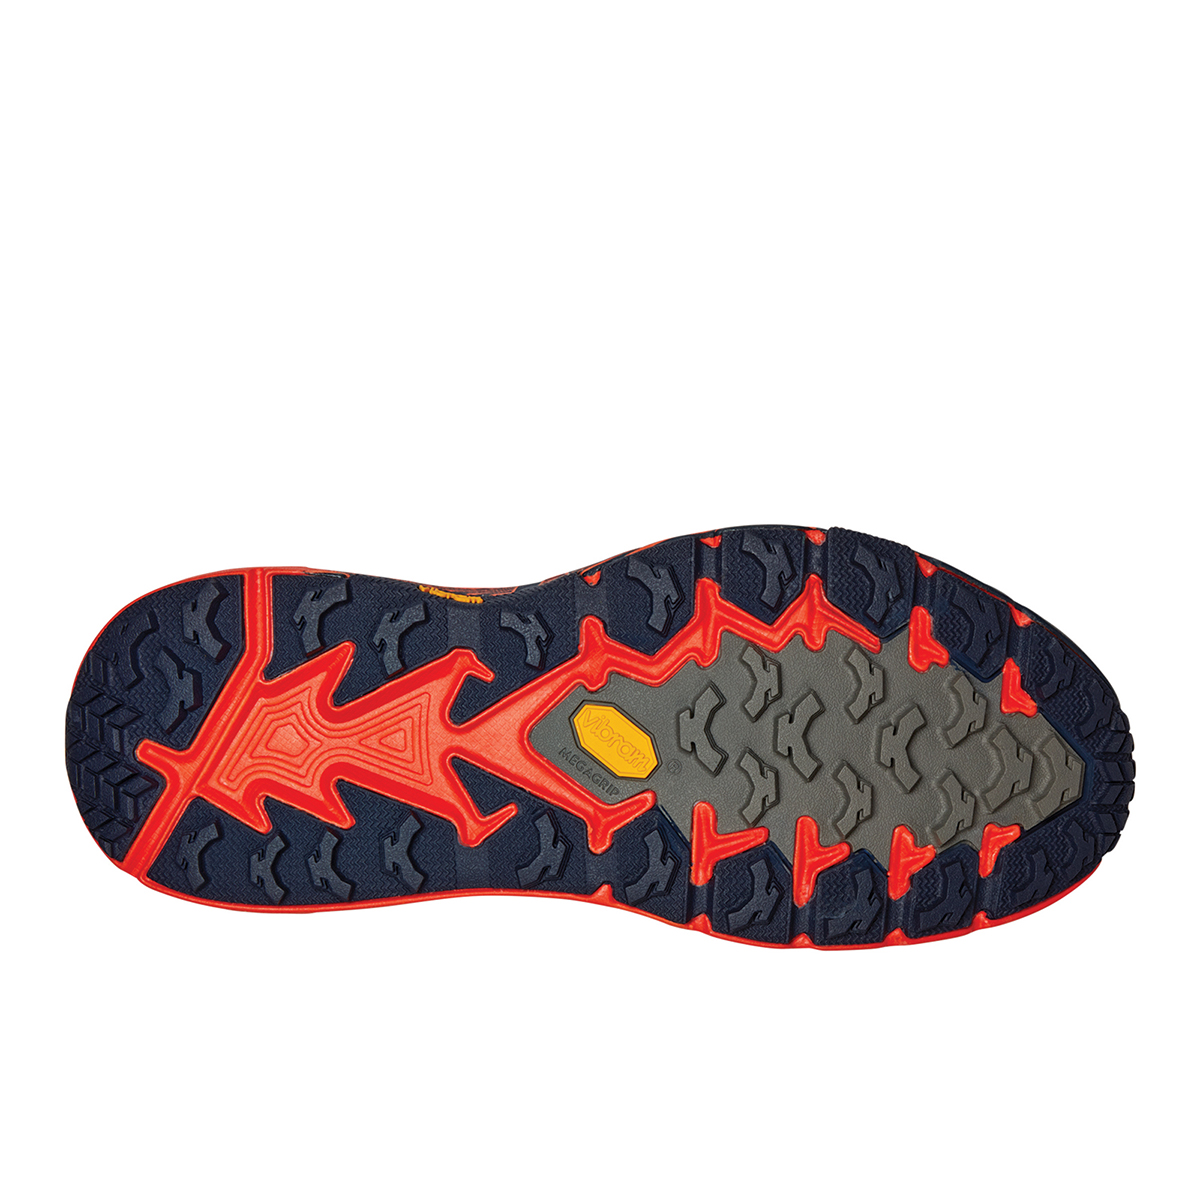 Men's Hoka One One Speedgoat Mid Gore-Tex Trail Hiking Shoe - Color: Mandarin Red / Gold Fusion - Size: 7 - Width: Regular, Mandarin Red / Gold Fusion, large, image 4